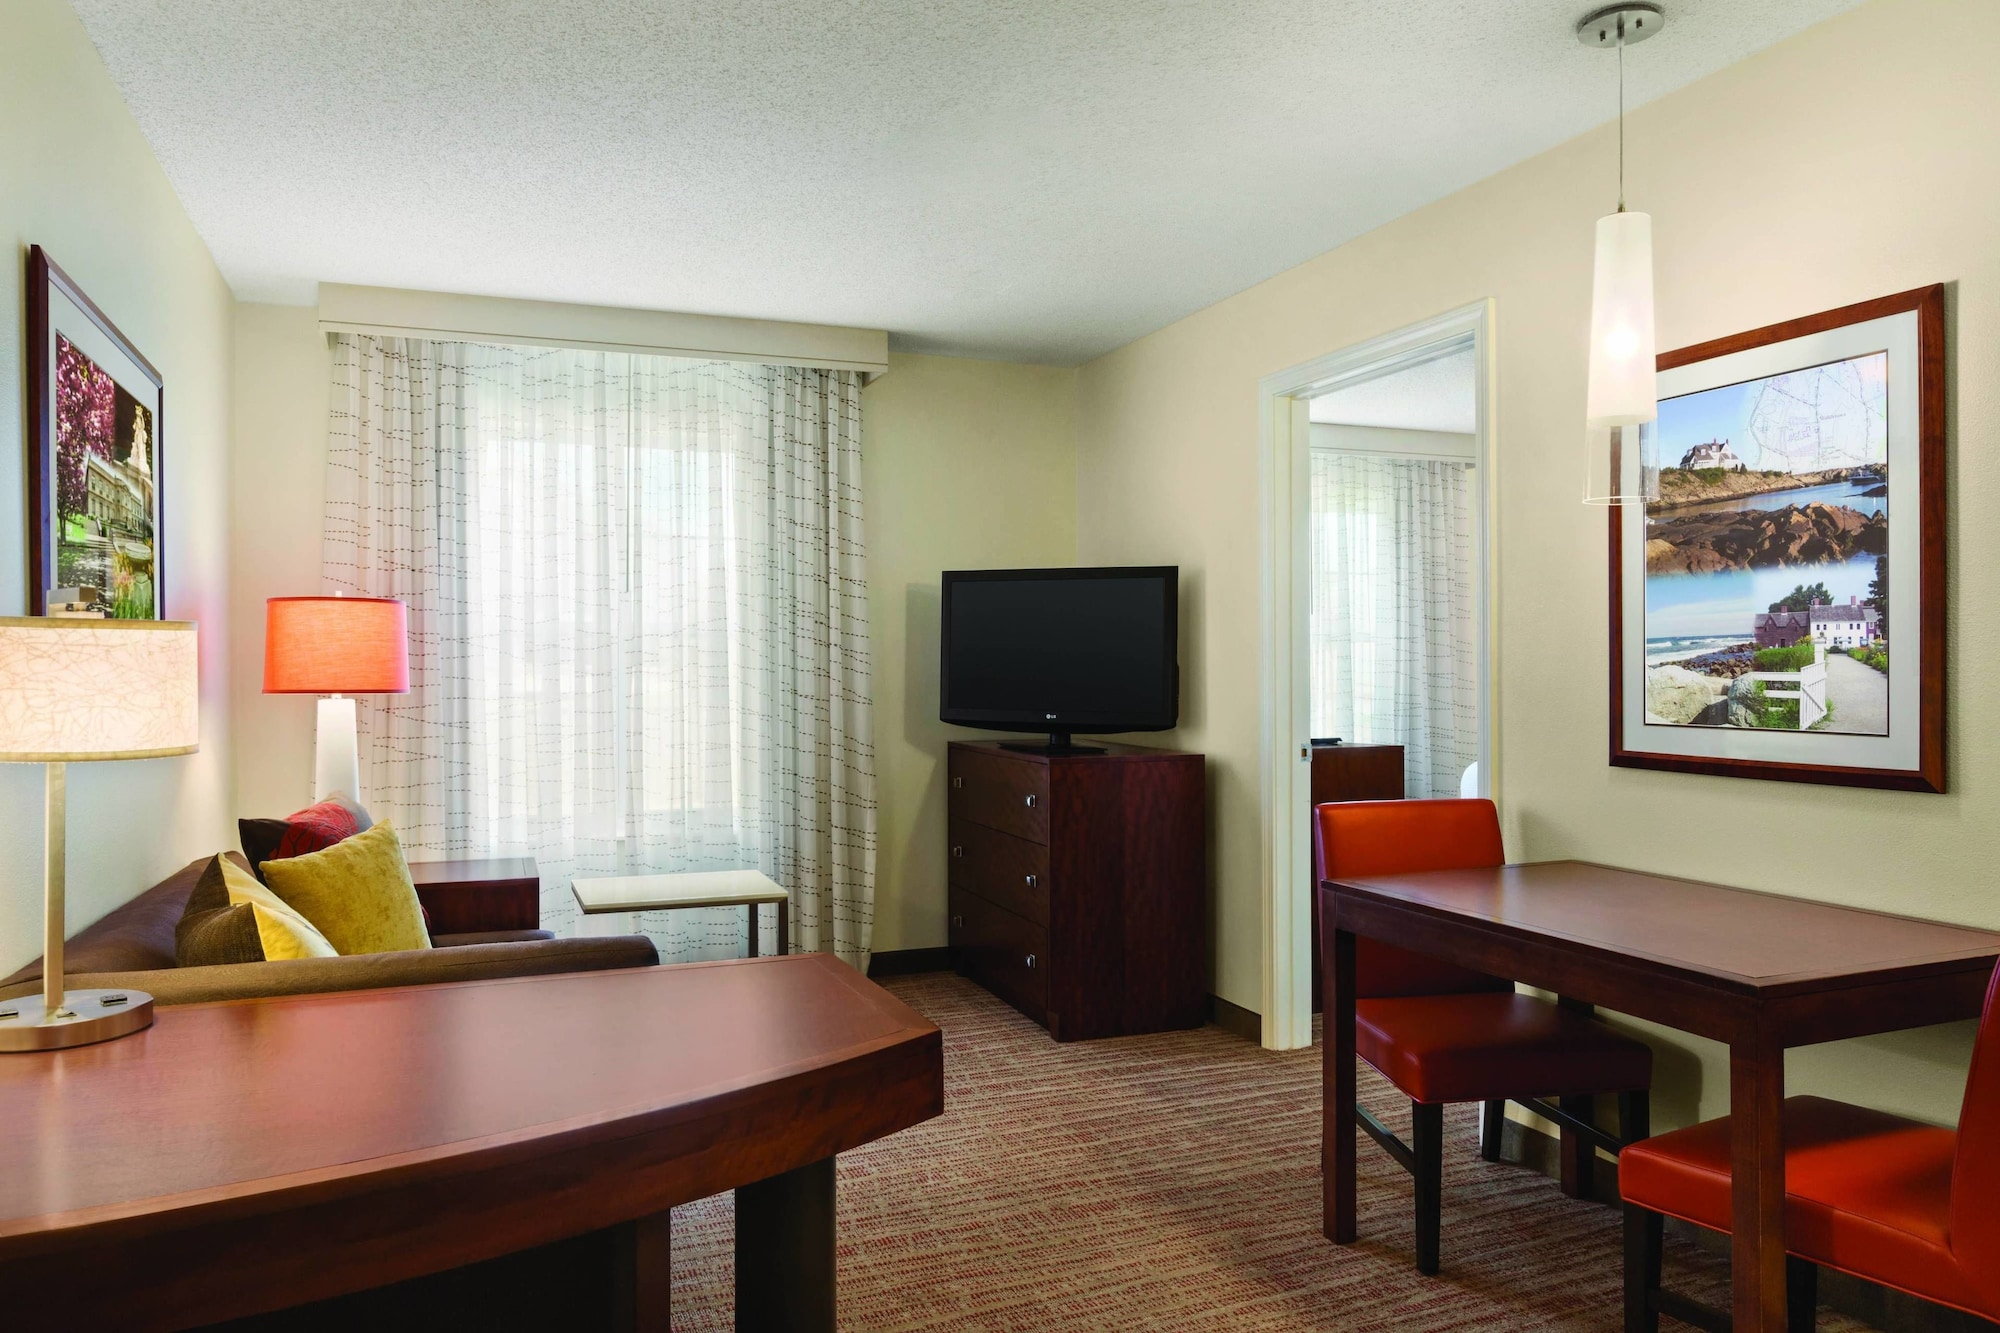 Residence Inn by Marriott Newport/Middletown, Newport